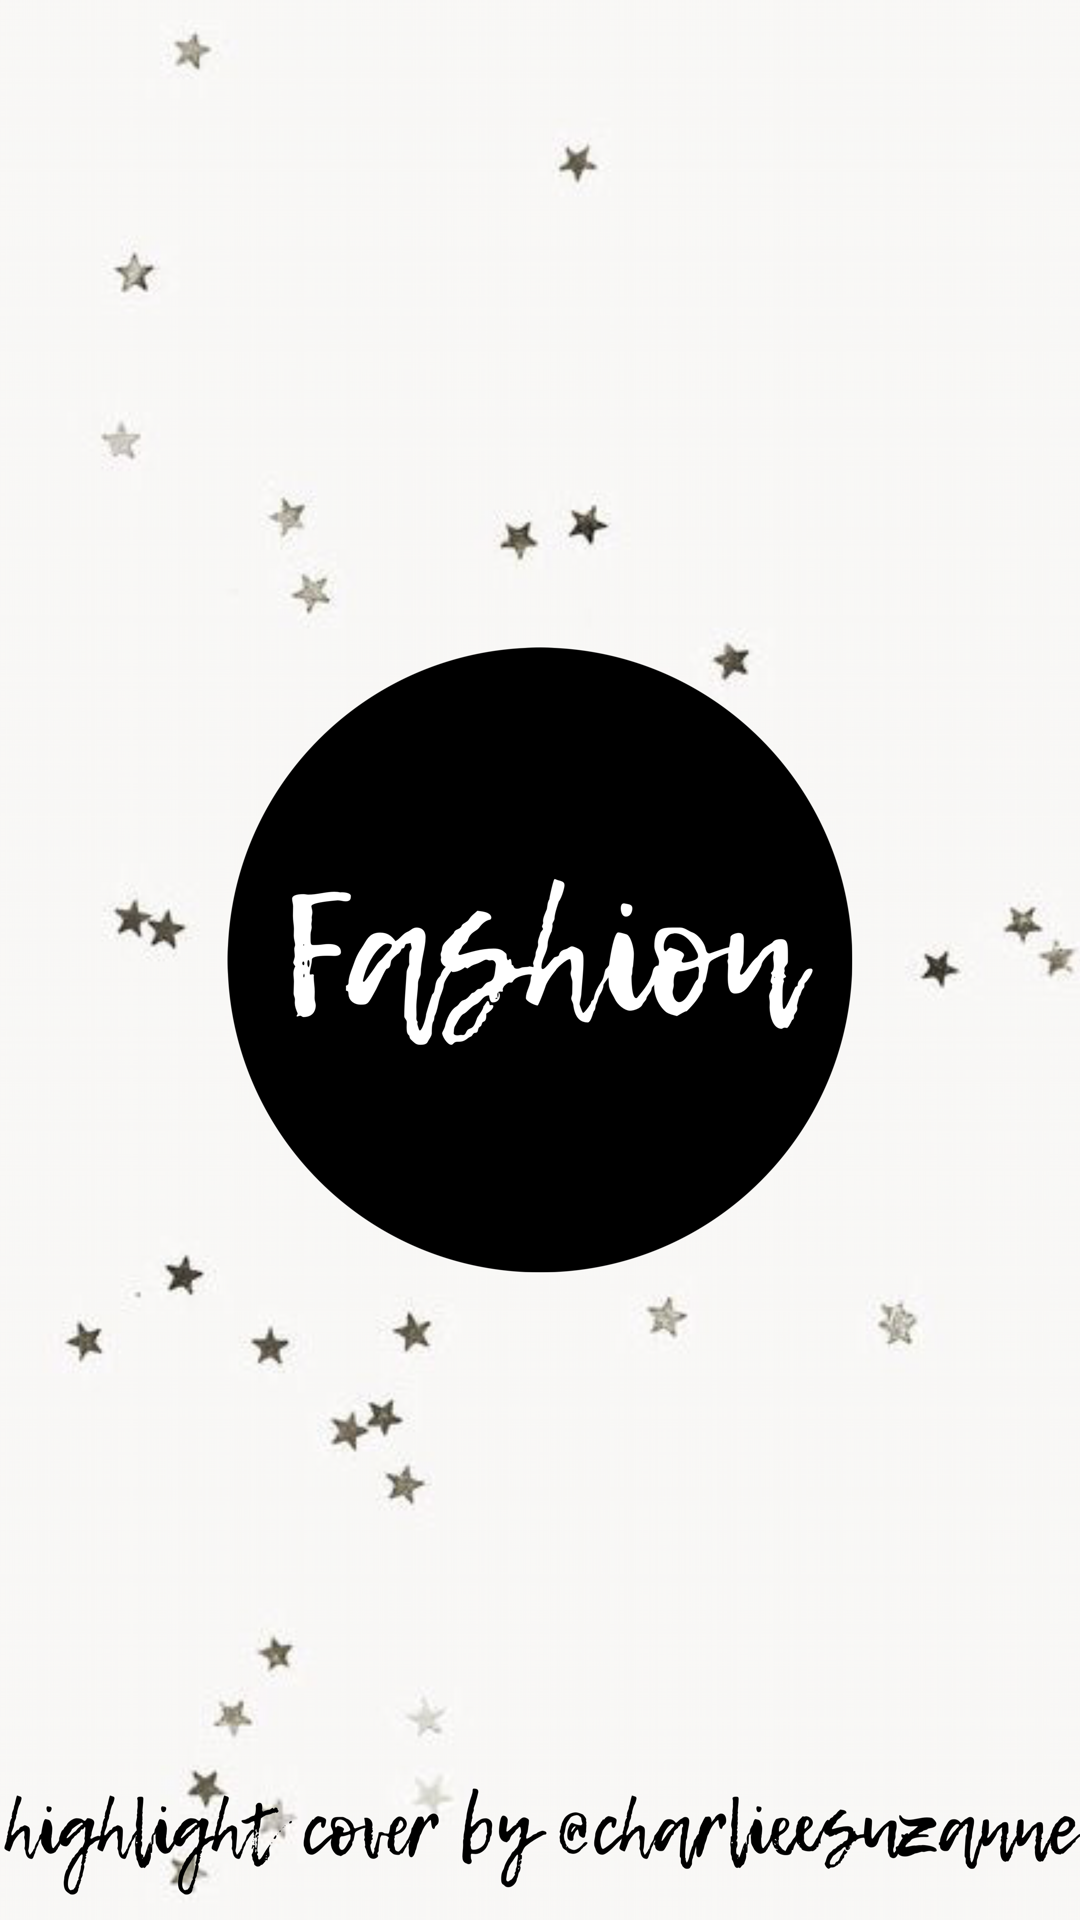 Black White Star Theme Instagram Highlight Covers By Charlieesuzanne Instagram Icons Creative Instagram Stories Instagram Editing